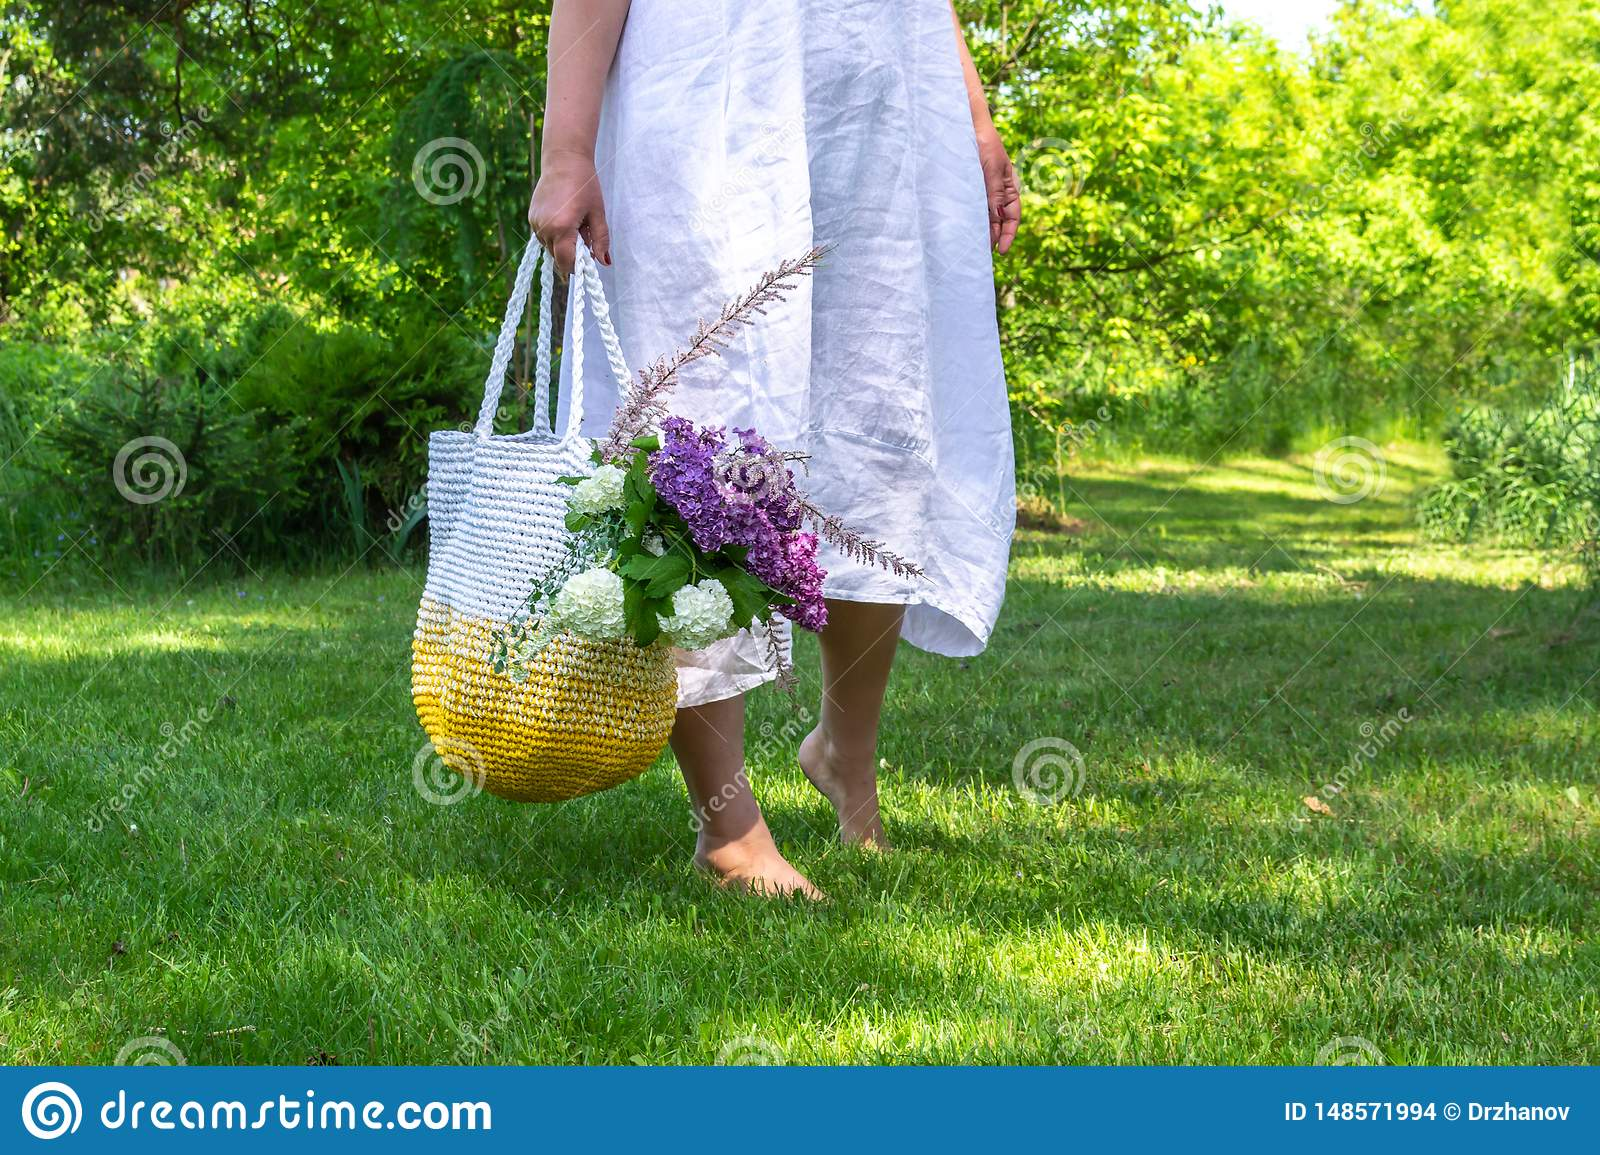 Middle age woman in white simple linen dress stays barefoot on the grass in beautiful garden and holds knitted white-yellow bag